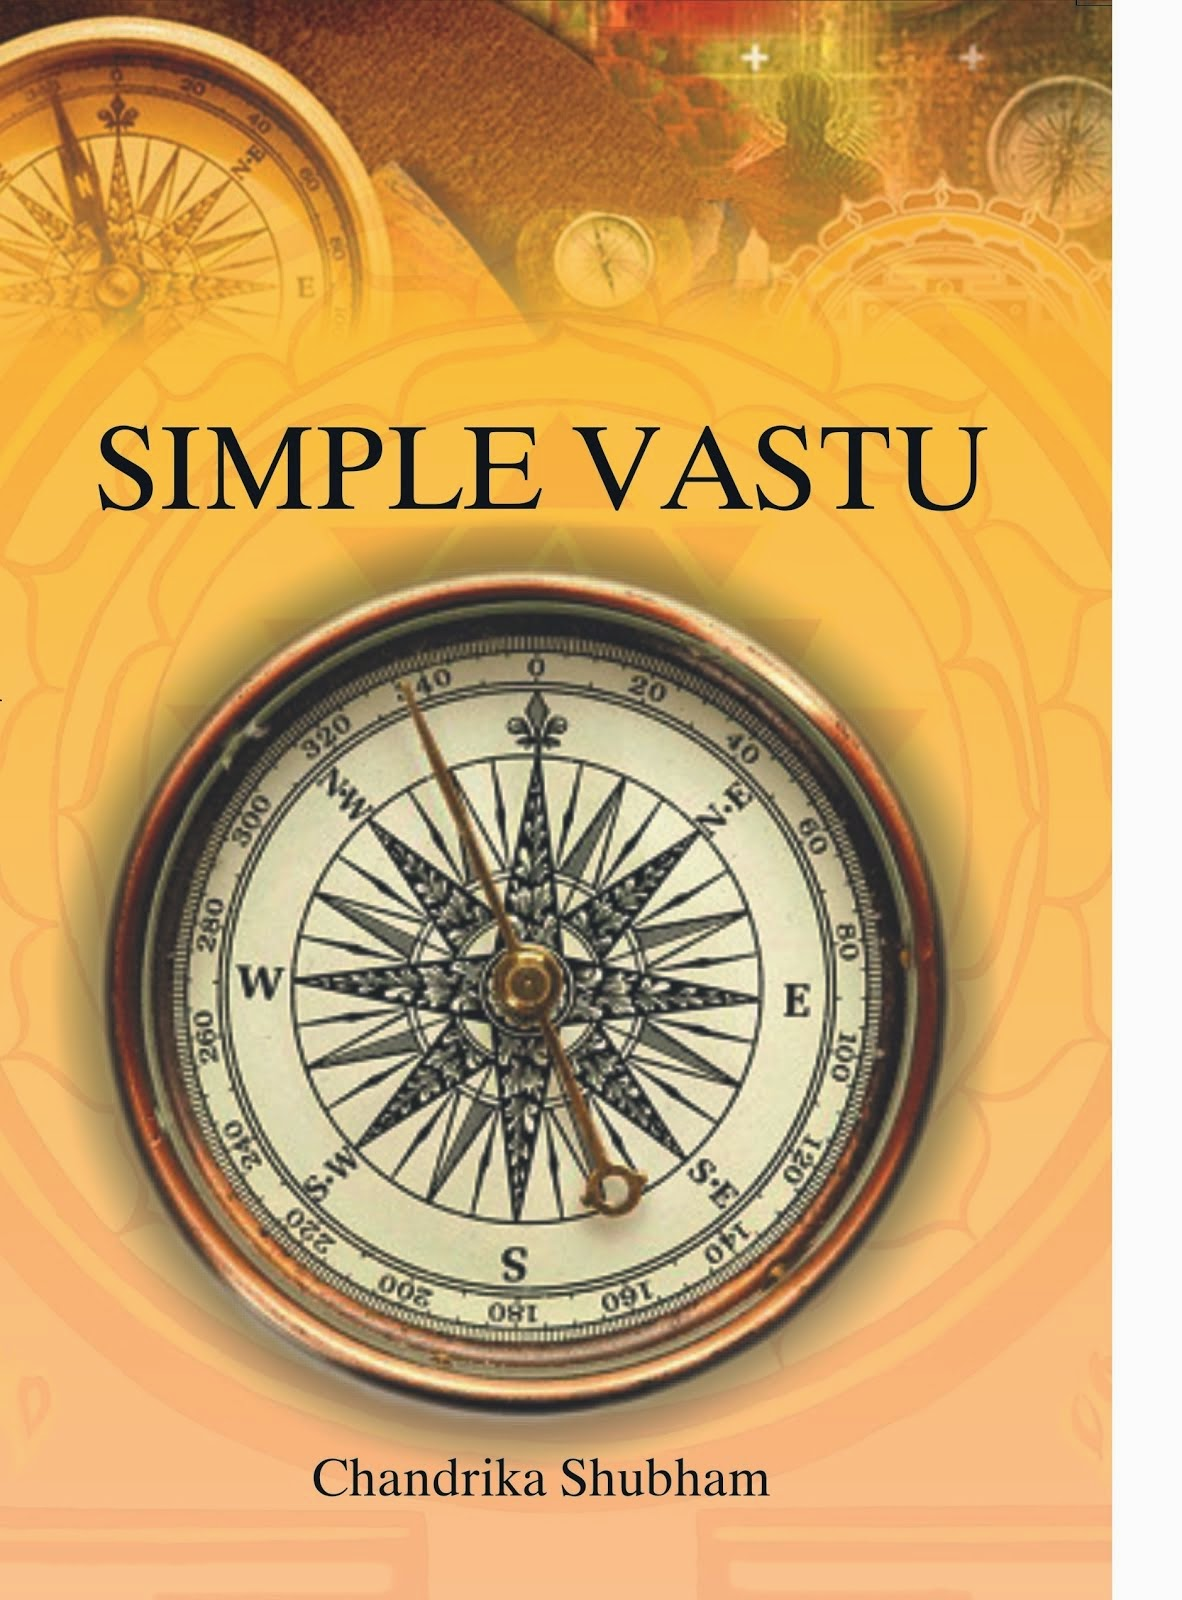 Book authored by me on Vastushastra!